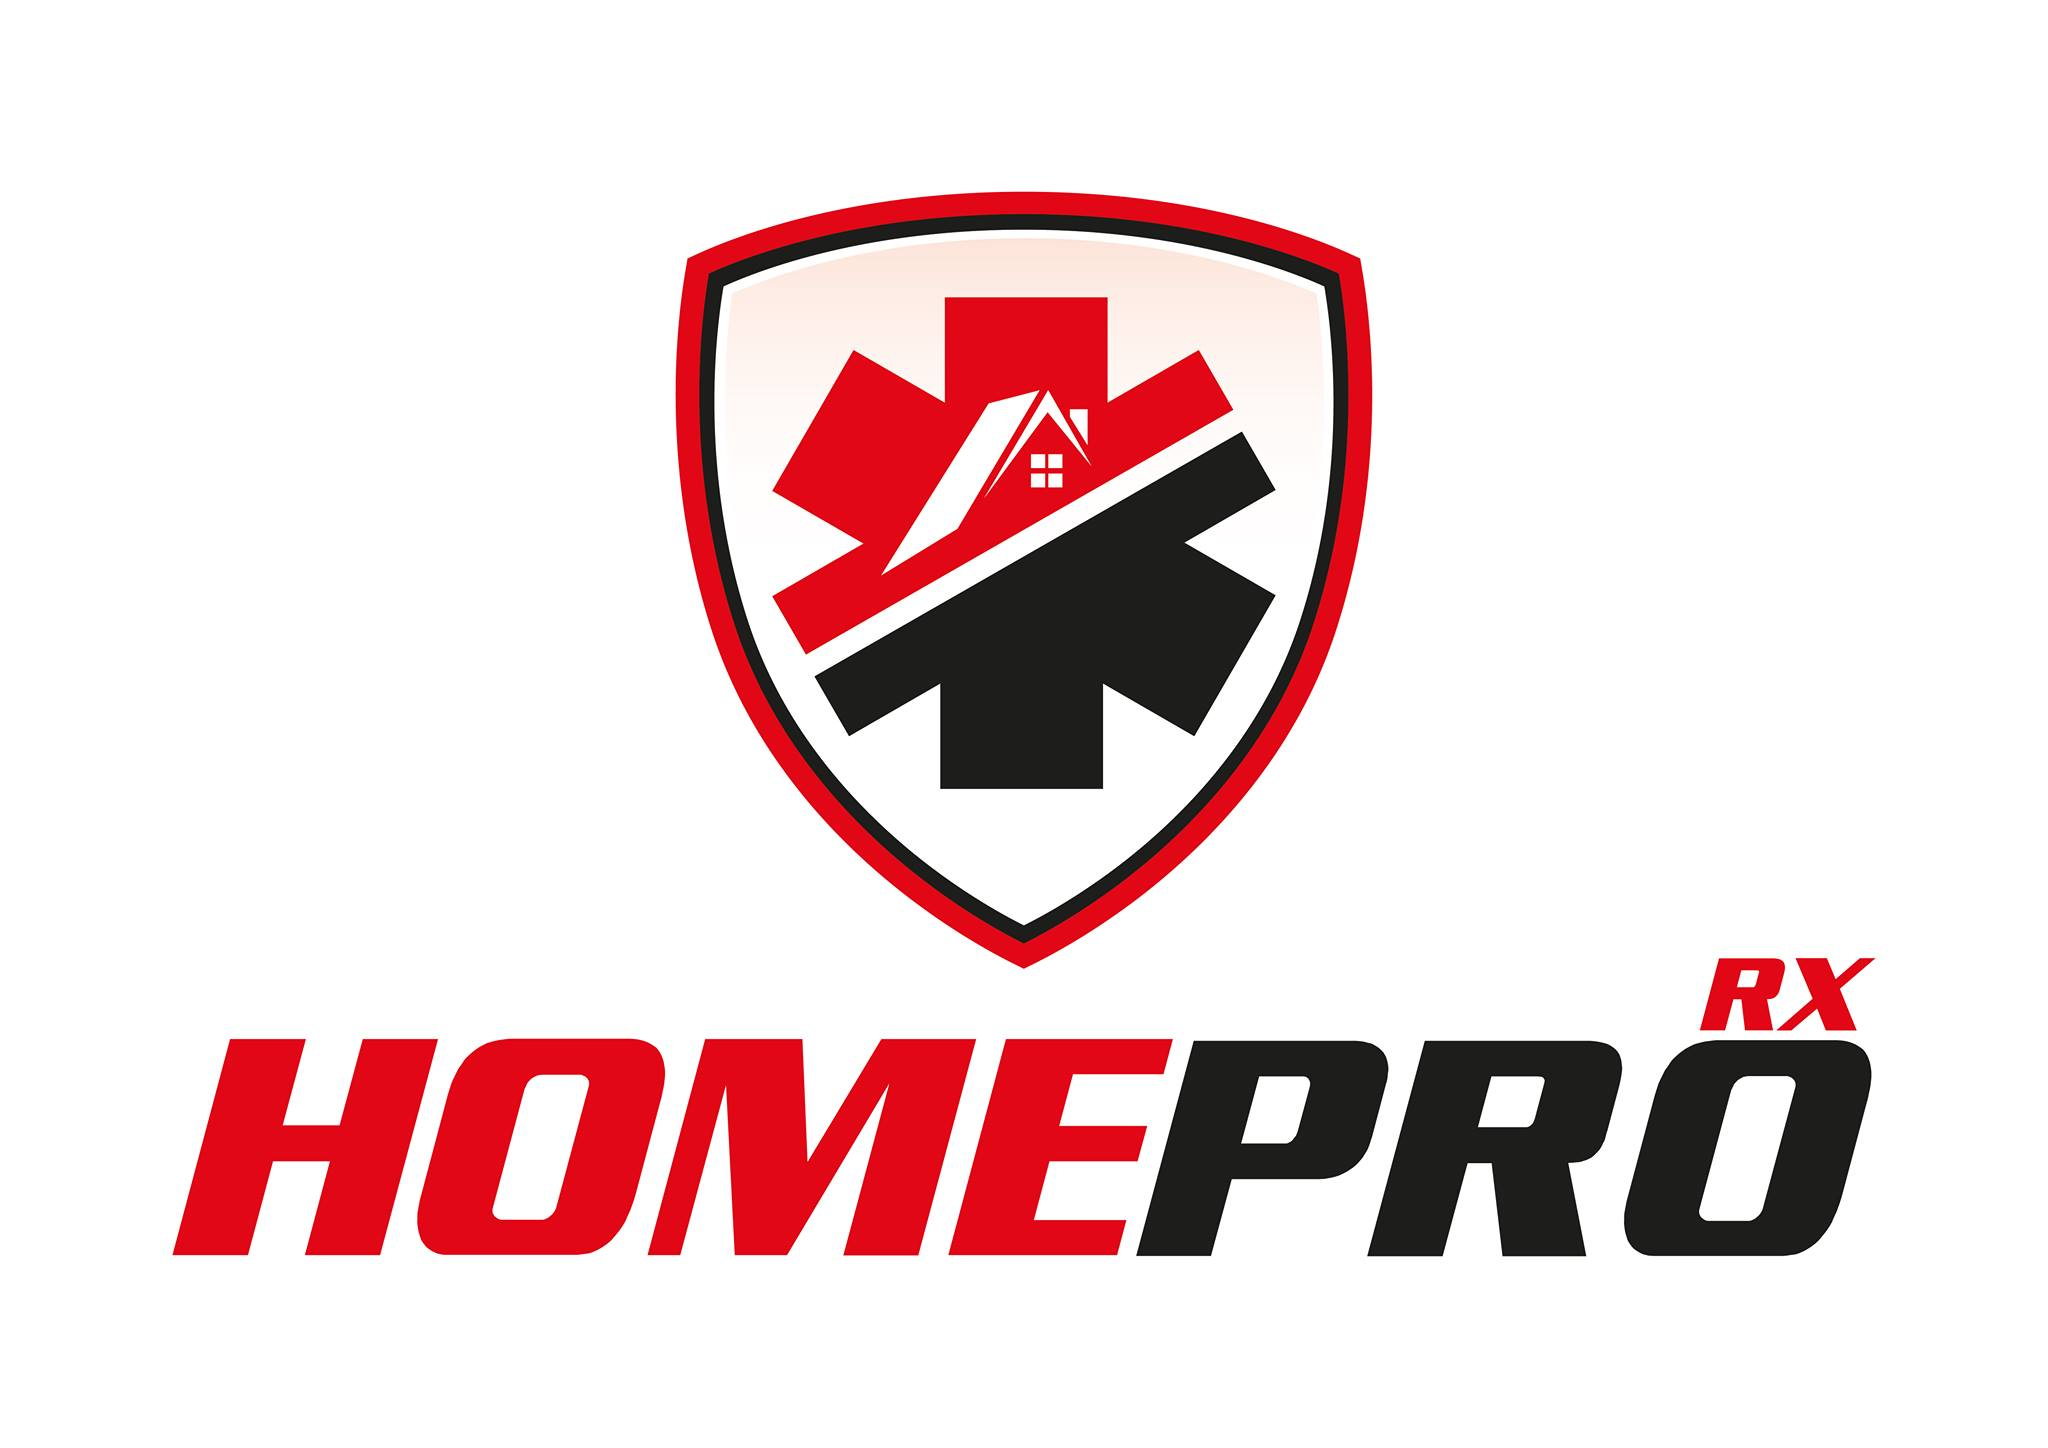 HomePro Rx